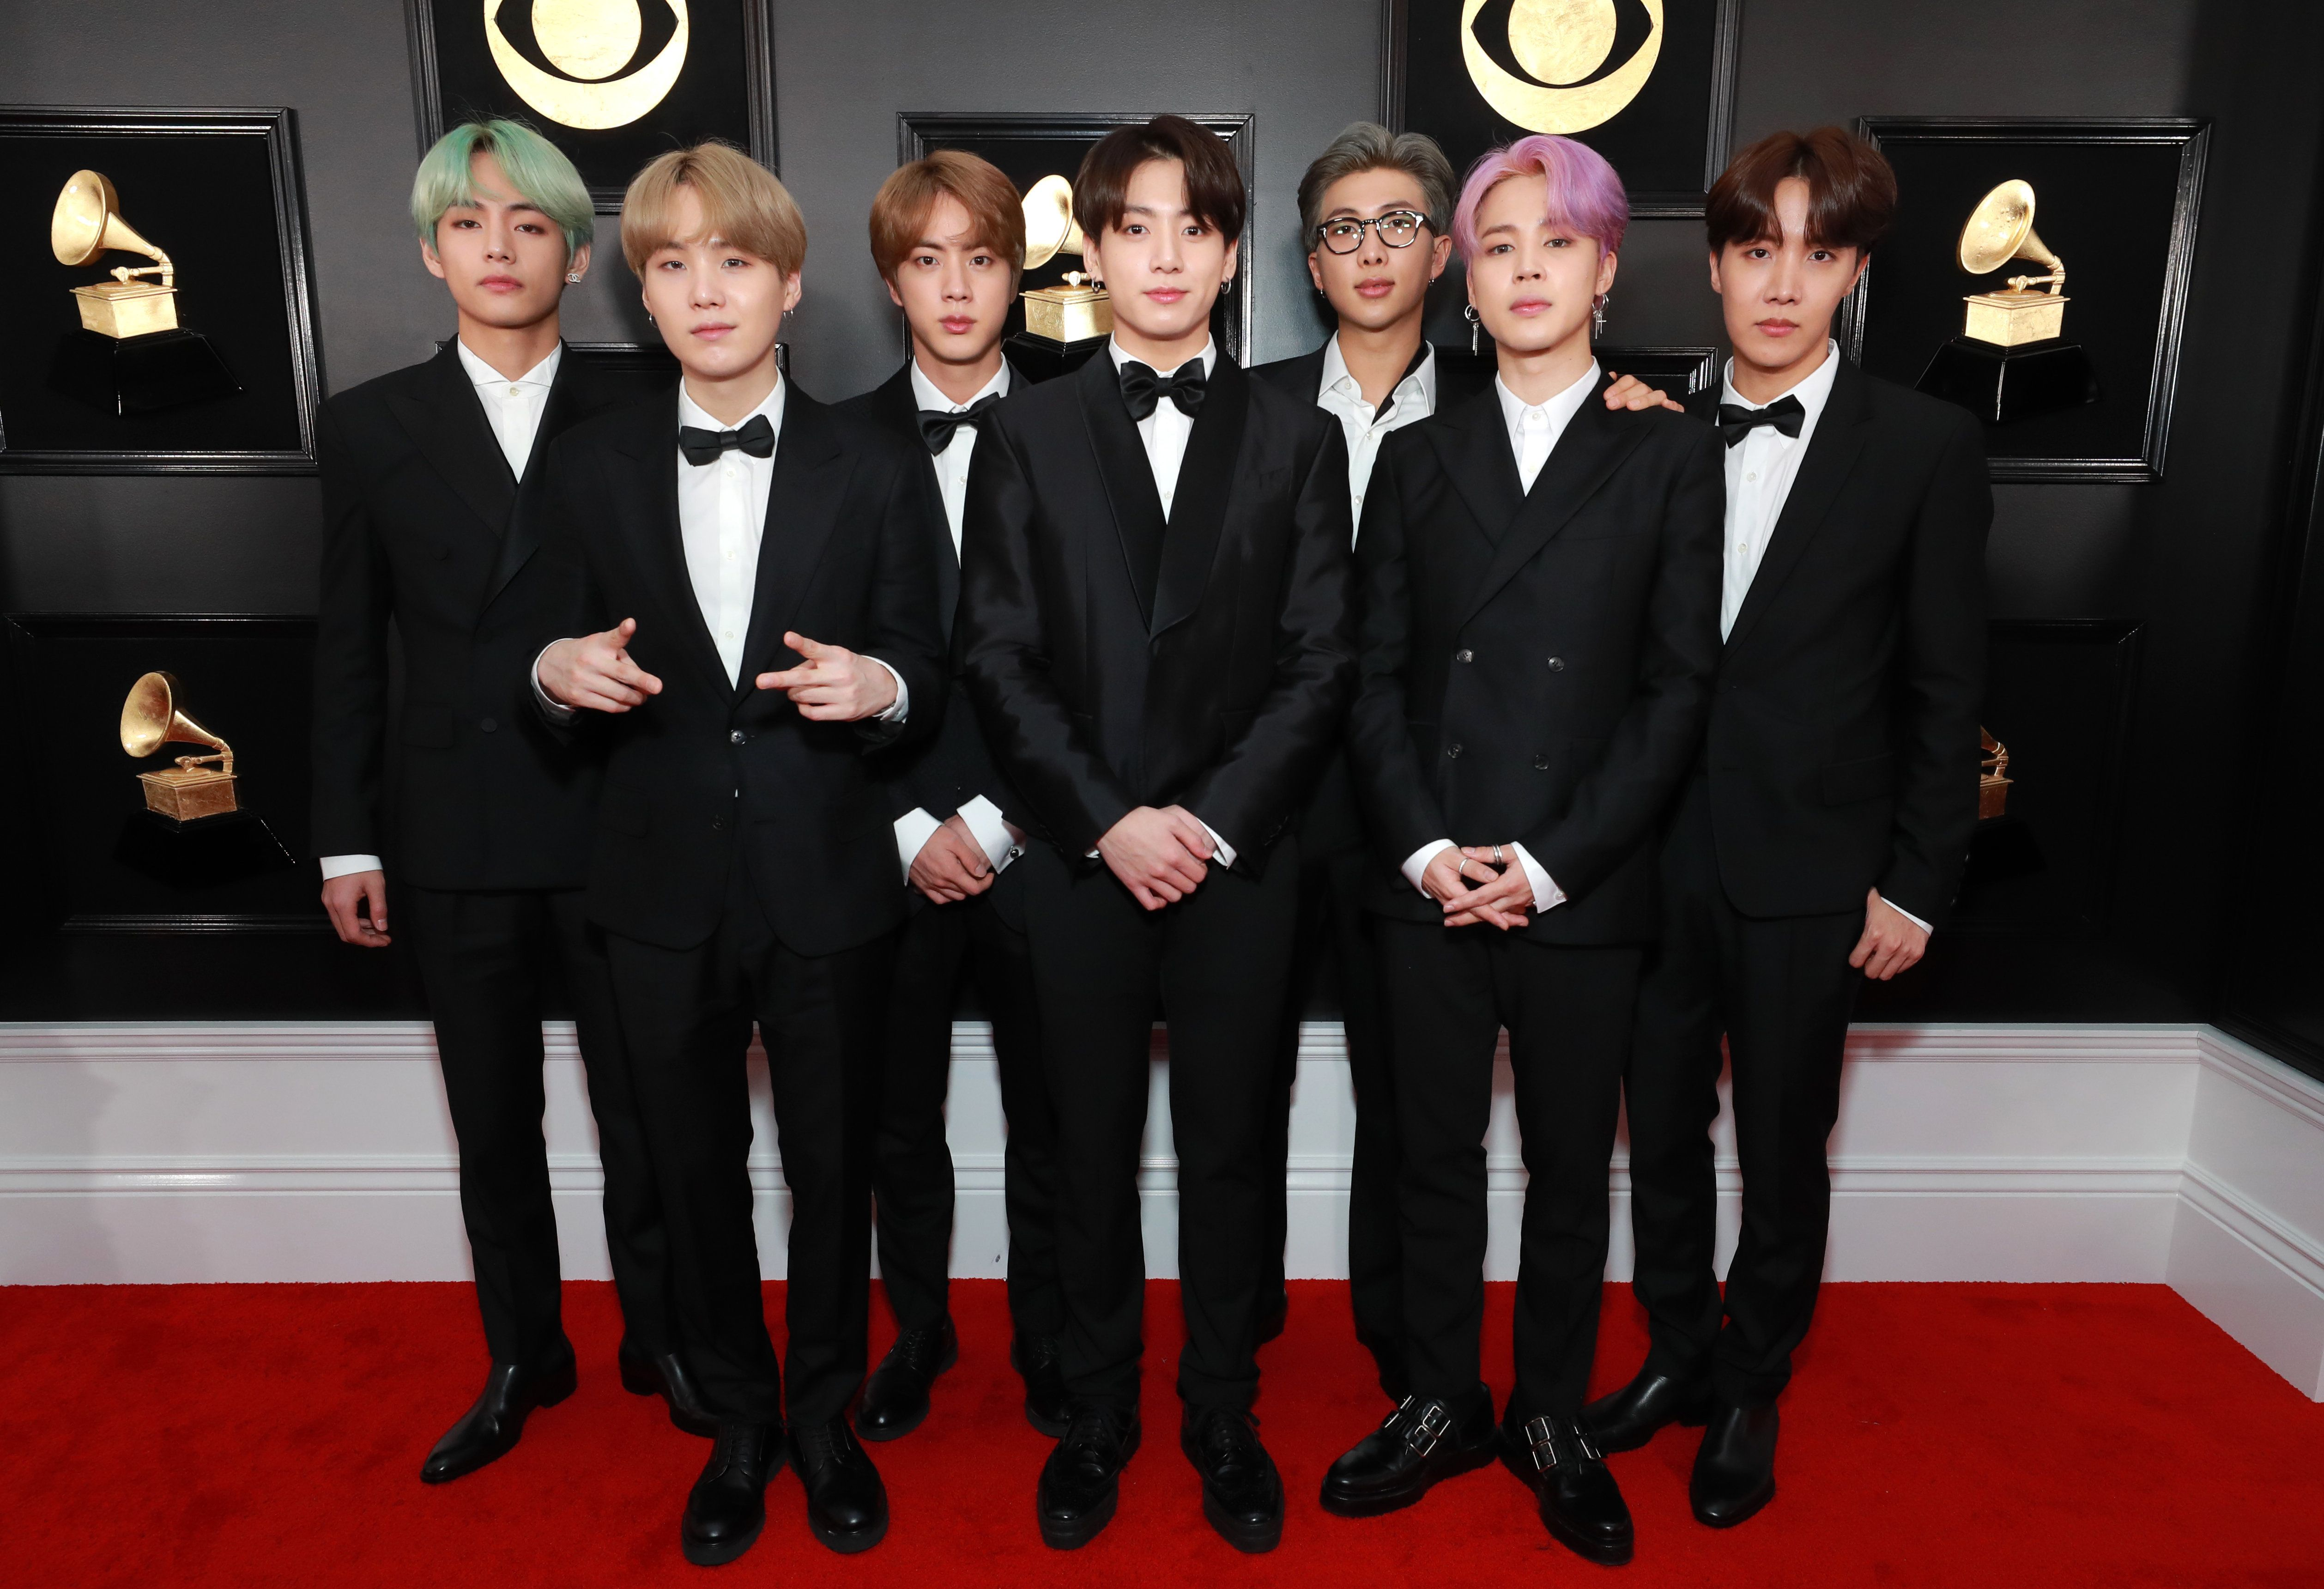 LOS ANGELES, CA - FEBRUARY 10:  BTS attends the 61st Annual GRAMMY Awards at Staples Center on February 10, 2019 in Los Angeles, California.  (Photo by Rich Fury/Getty Images for The Recording Academy)